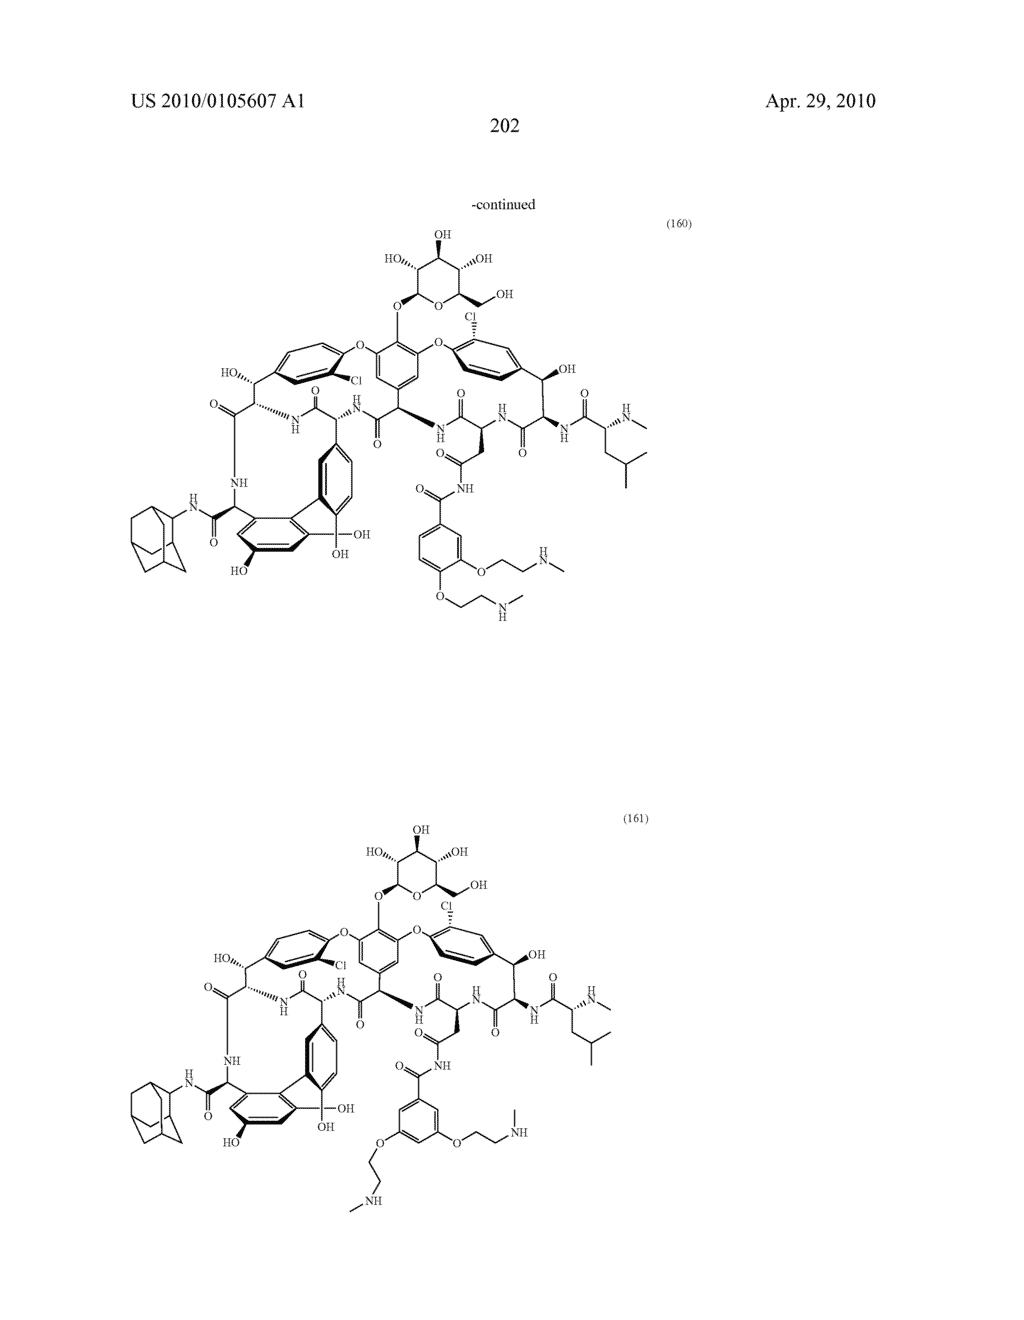 NOVEL SEMI-SYNTHETIC GLYCOPEPTIDES AS ANTIBACTERIAL AGENTS - diagram, schematic, and image 202